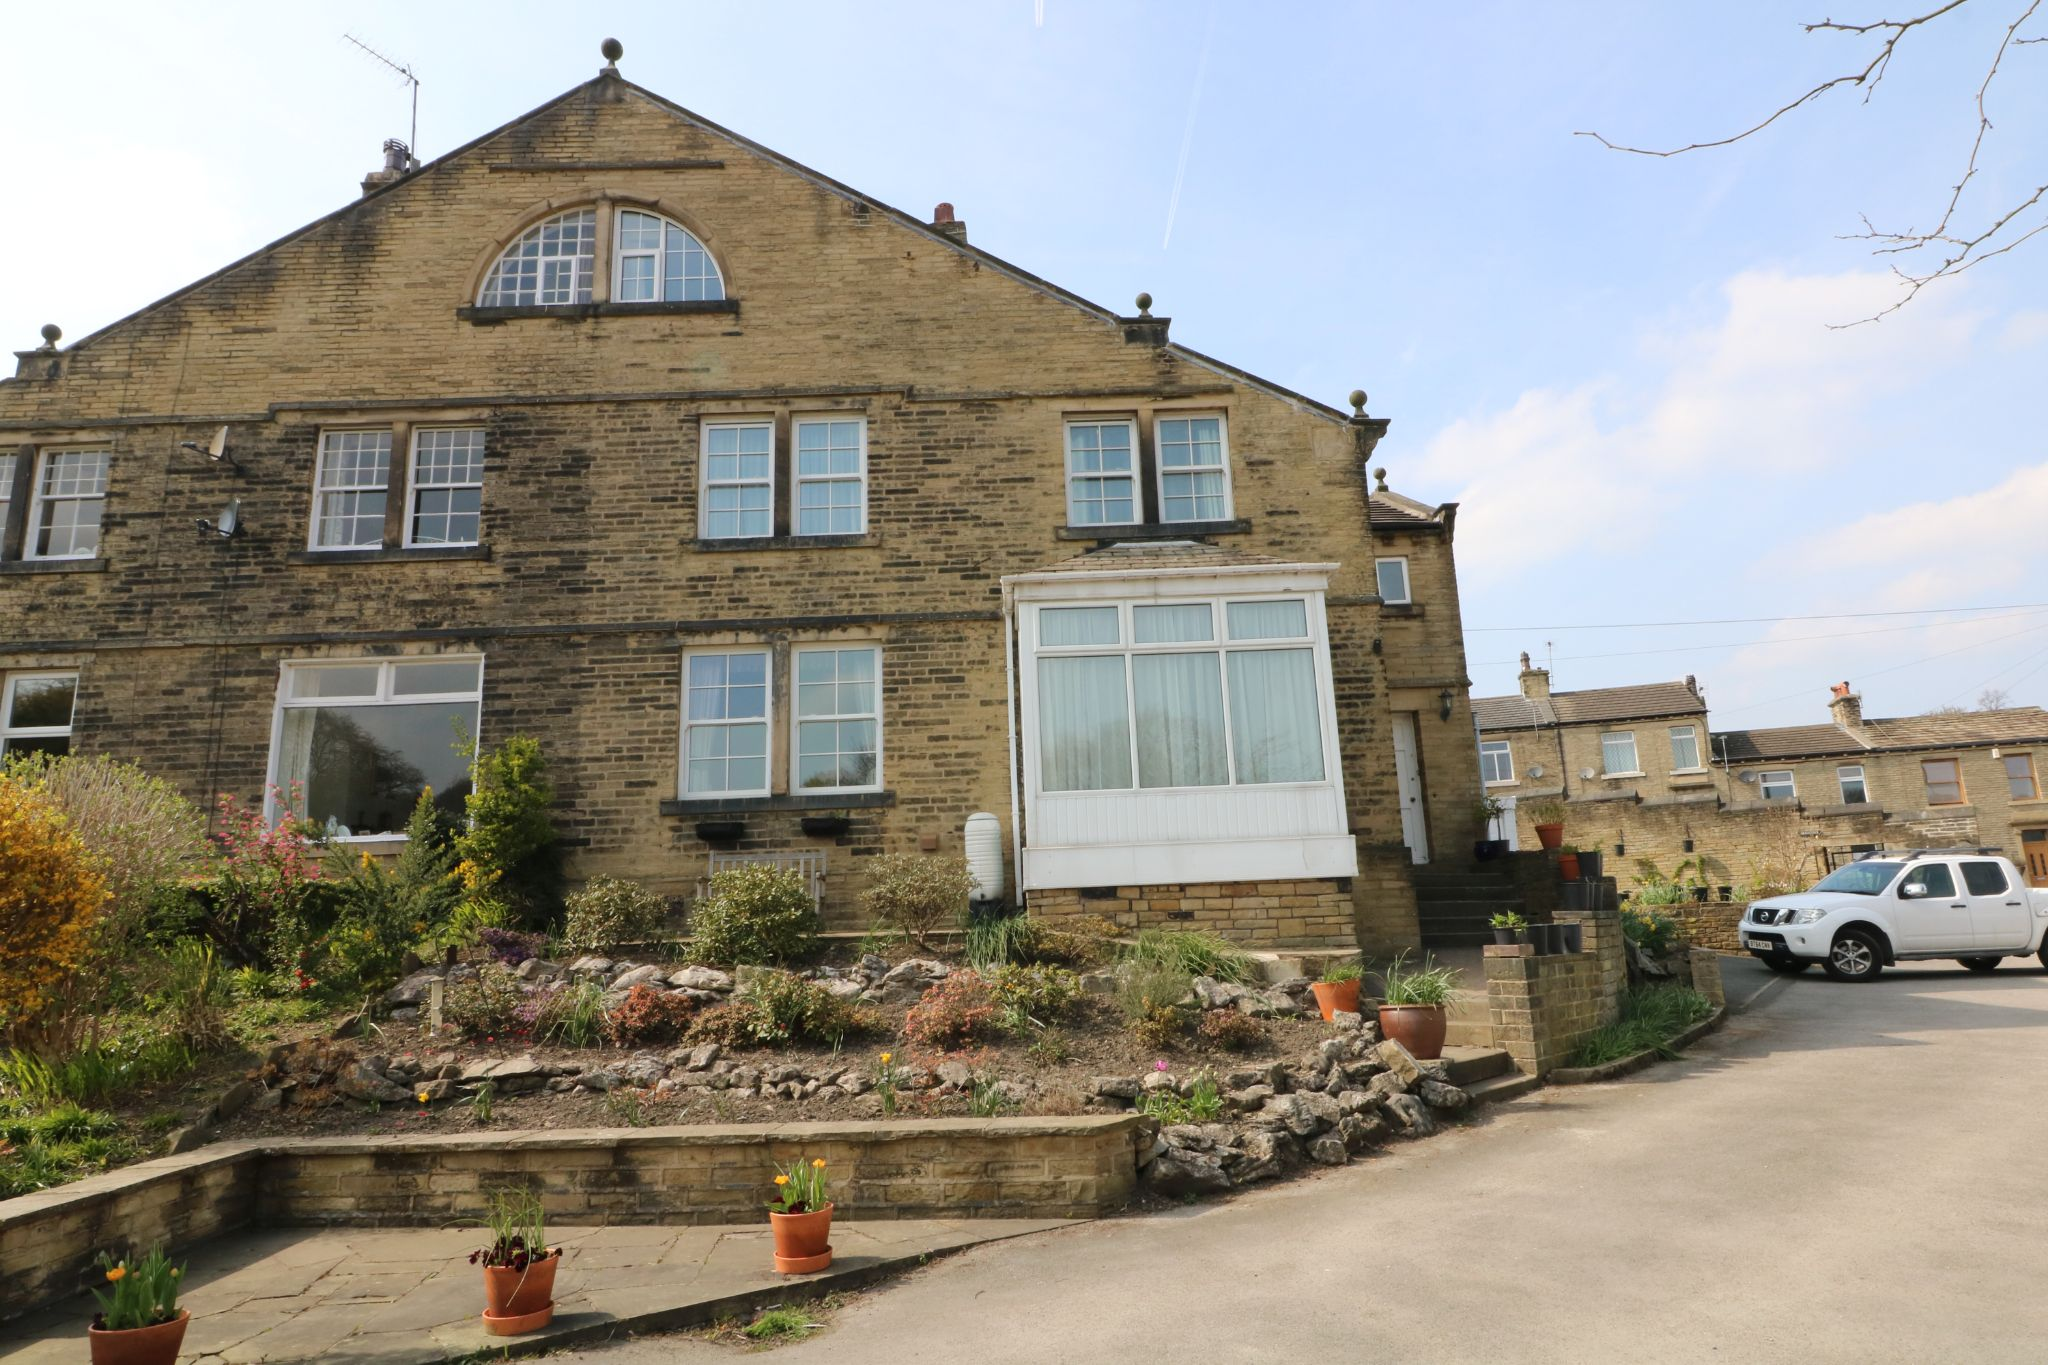 6 Bedroom Semi-detached House For Sale - Photograph 1